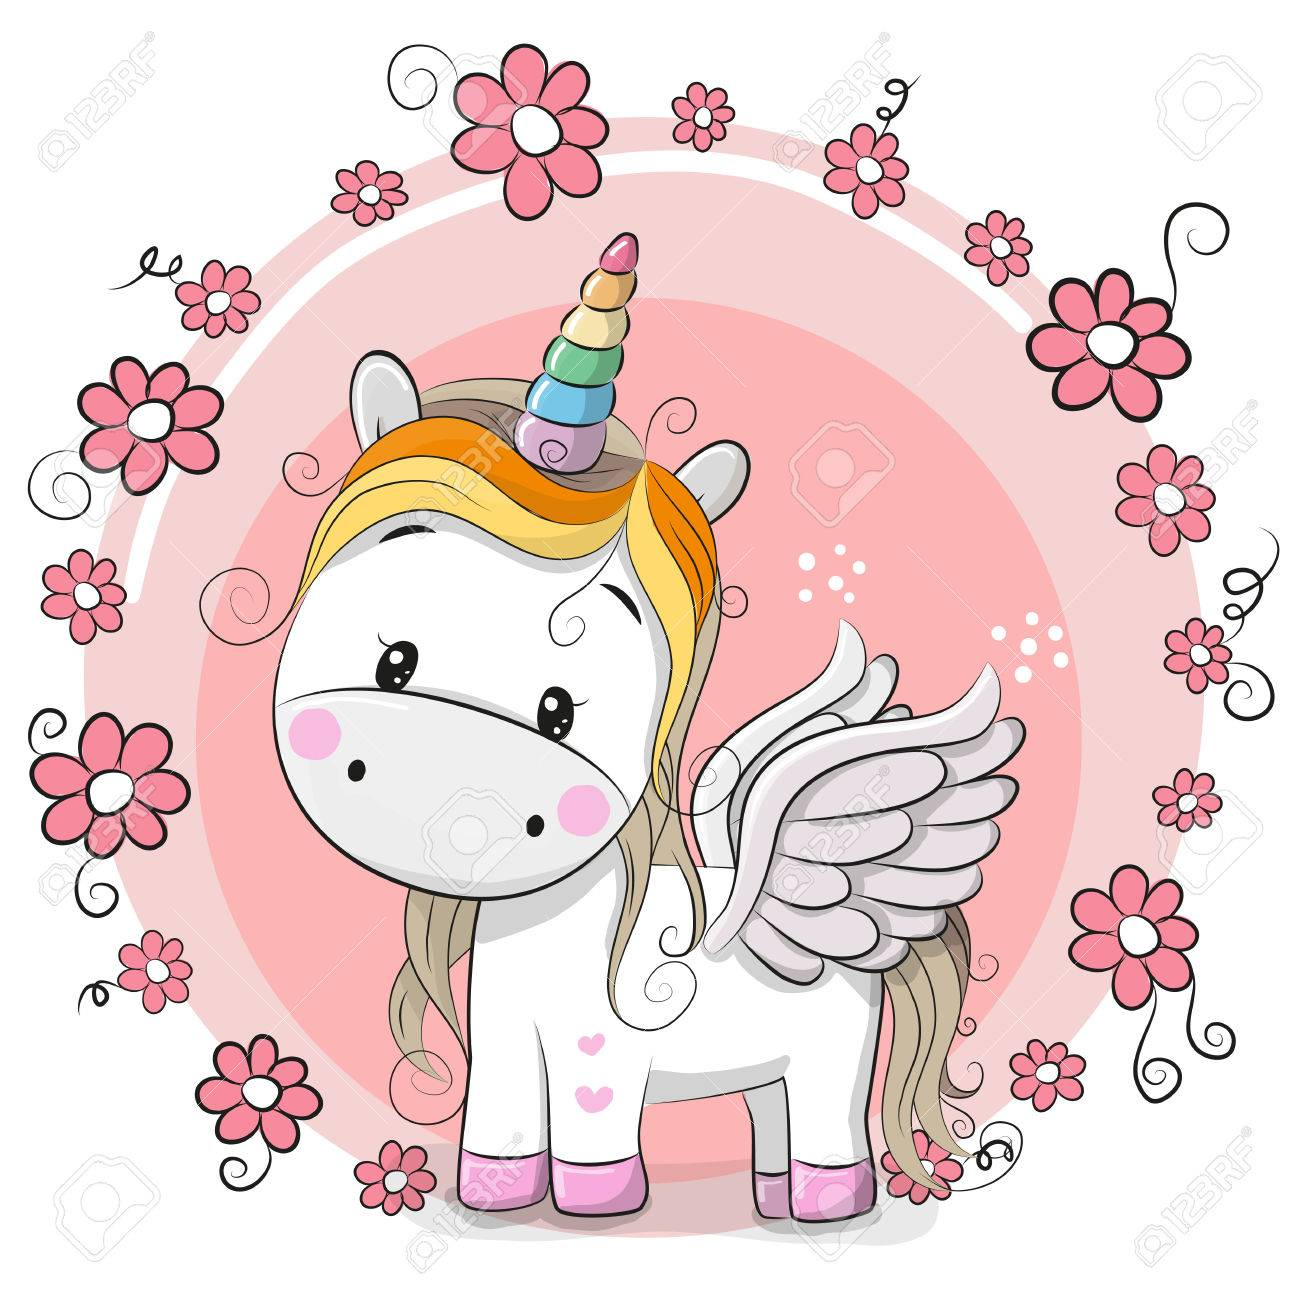 Cute Cartoon Unicorn With Flowers On A Pink Background Stock Vector